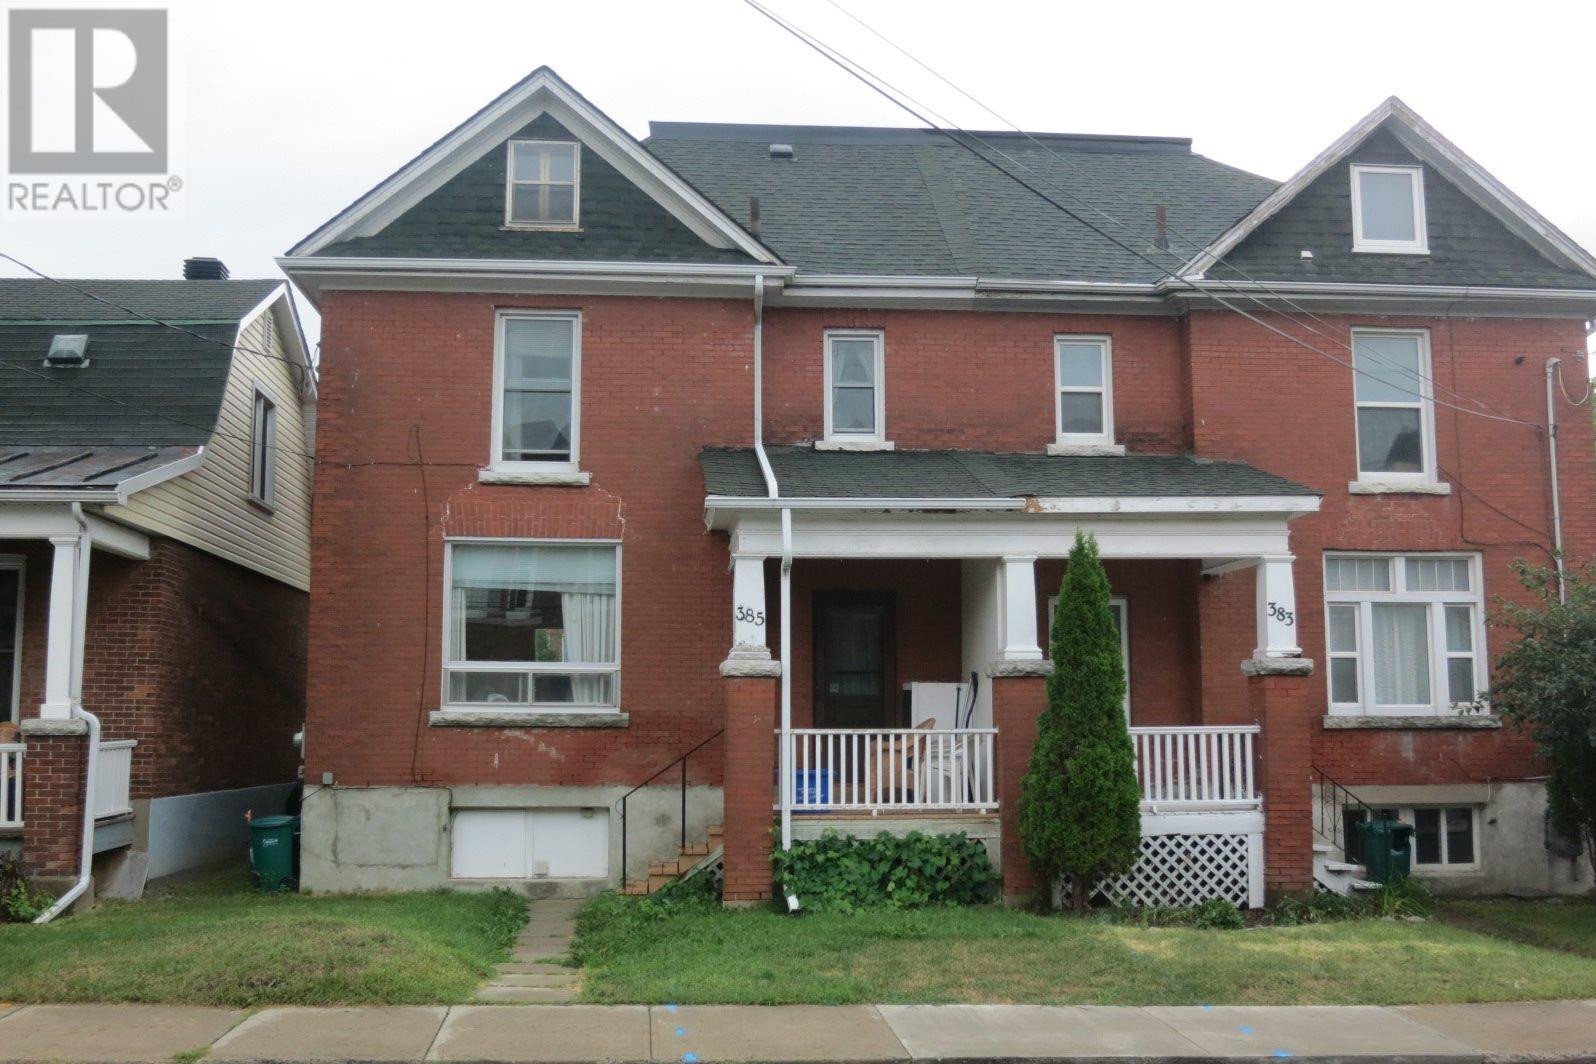 House for sale at 385 Alfred St Kingston Ontario - MLS: K20006397